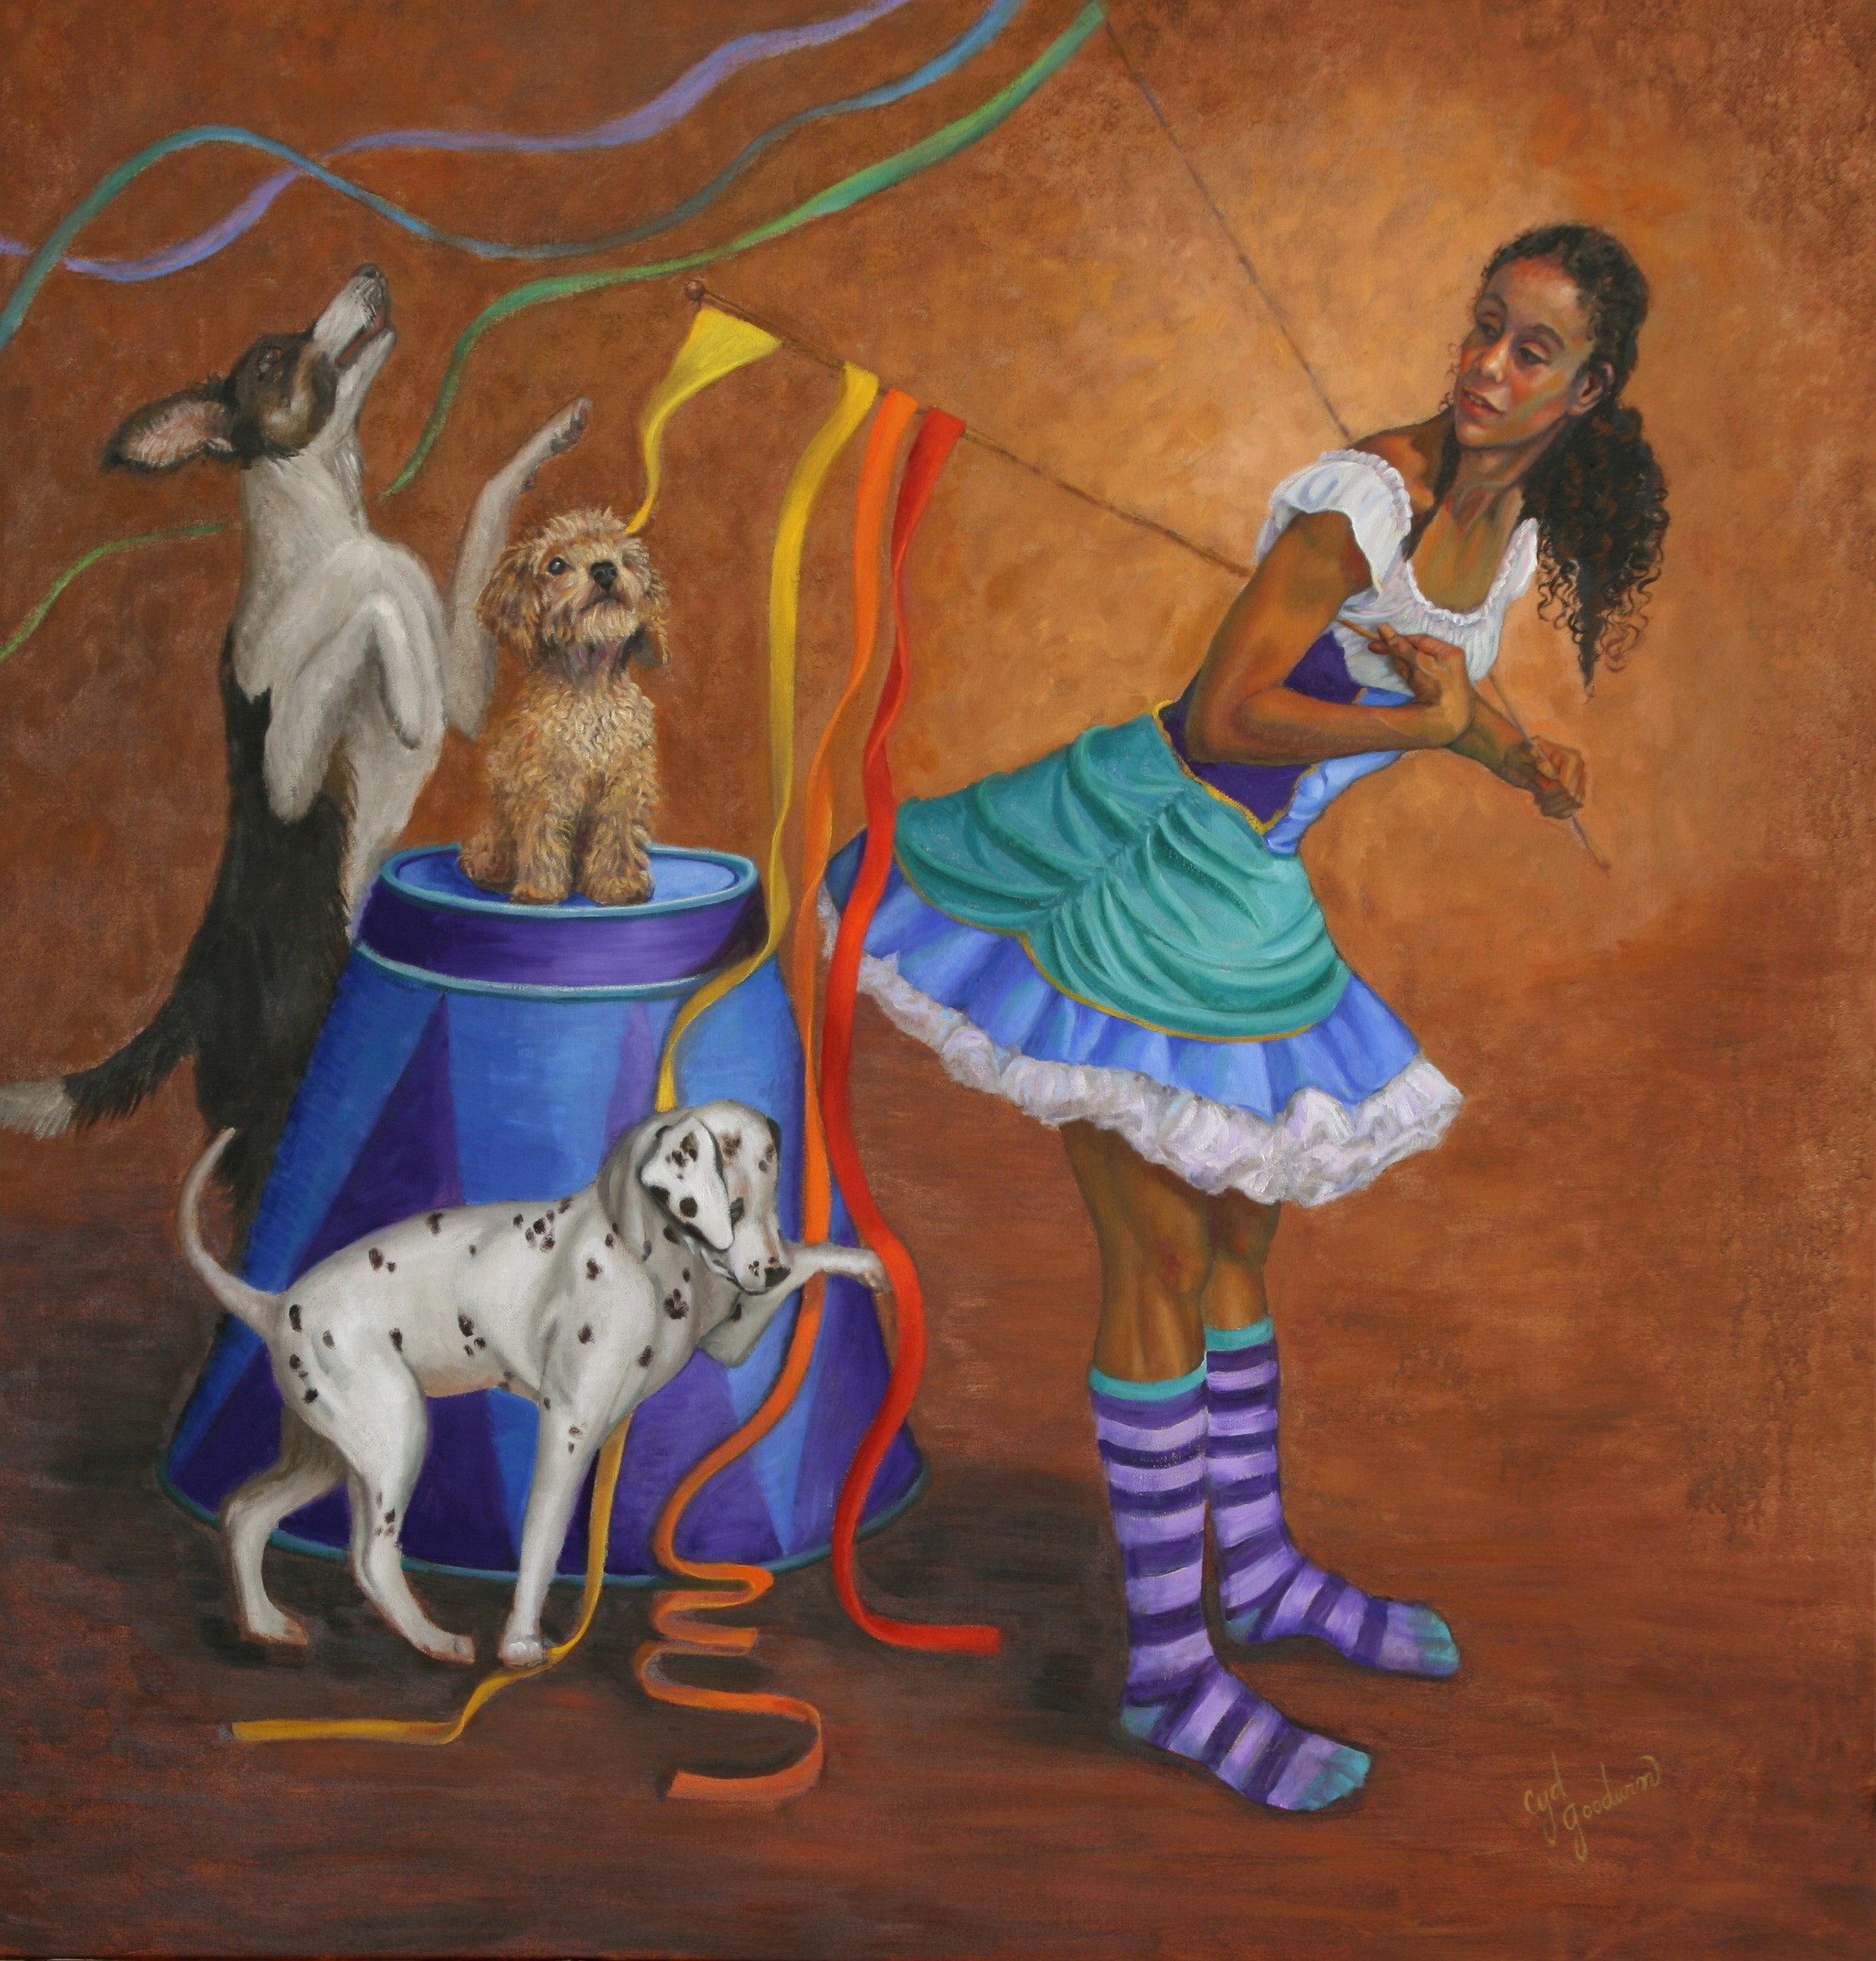 Female with ribbon wands and 3 puppies